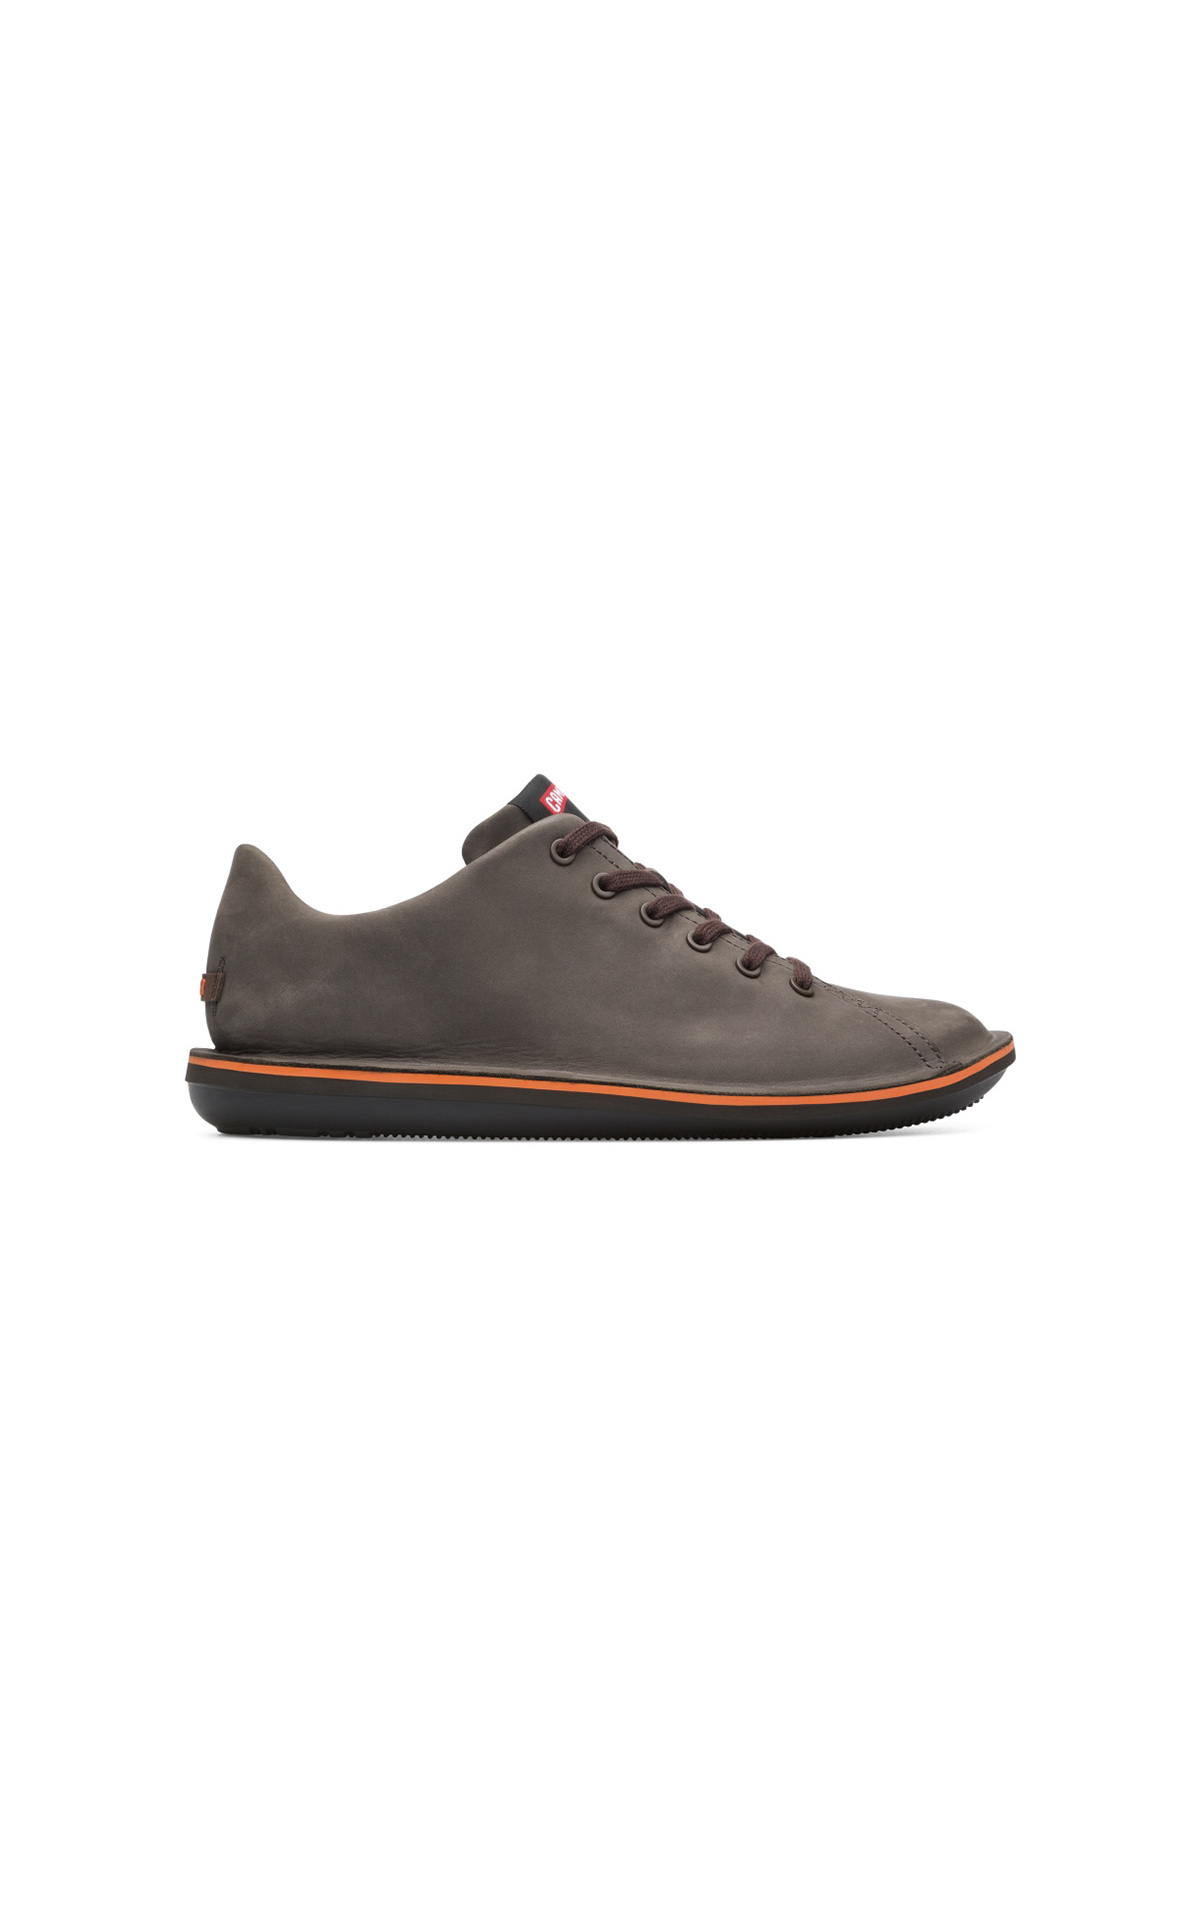 Grey leather sneakers man Camper